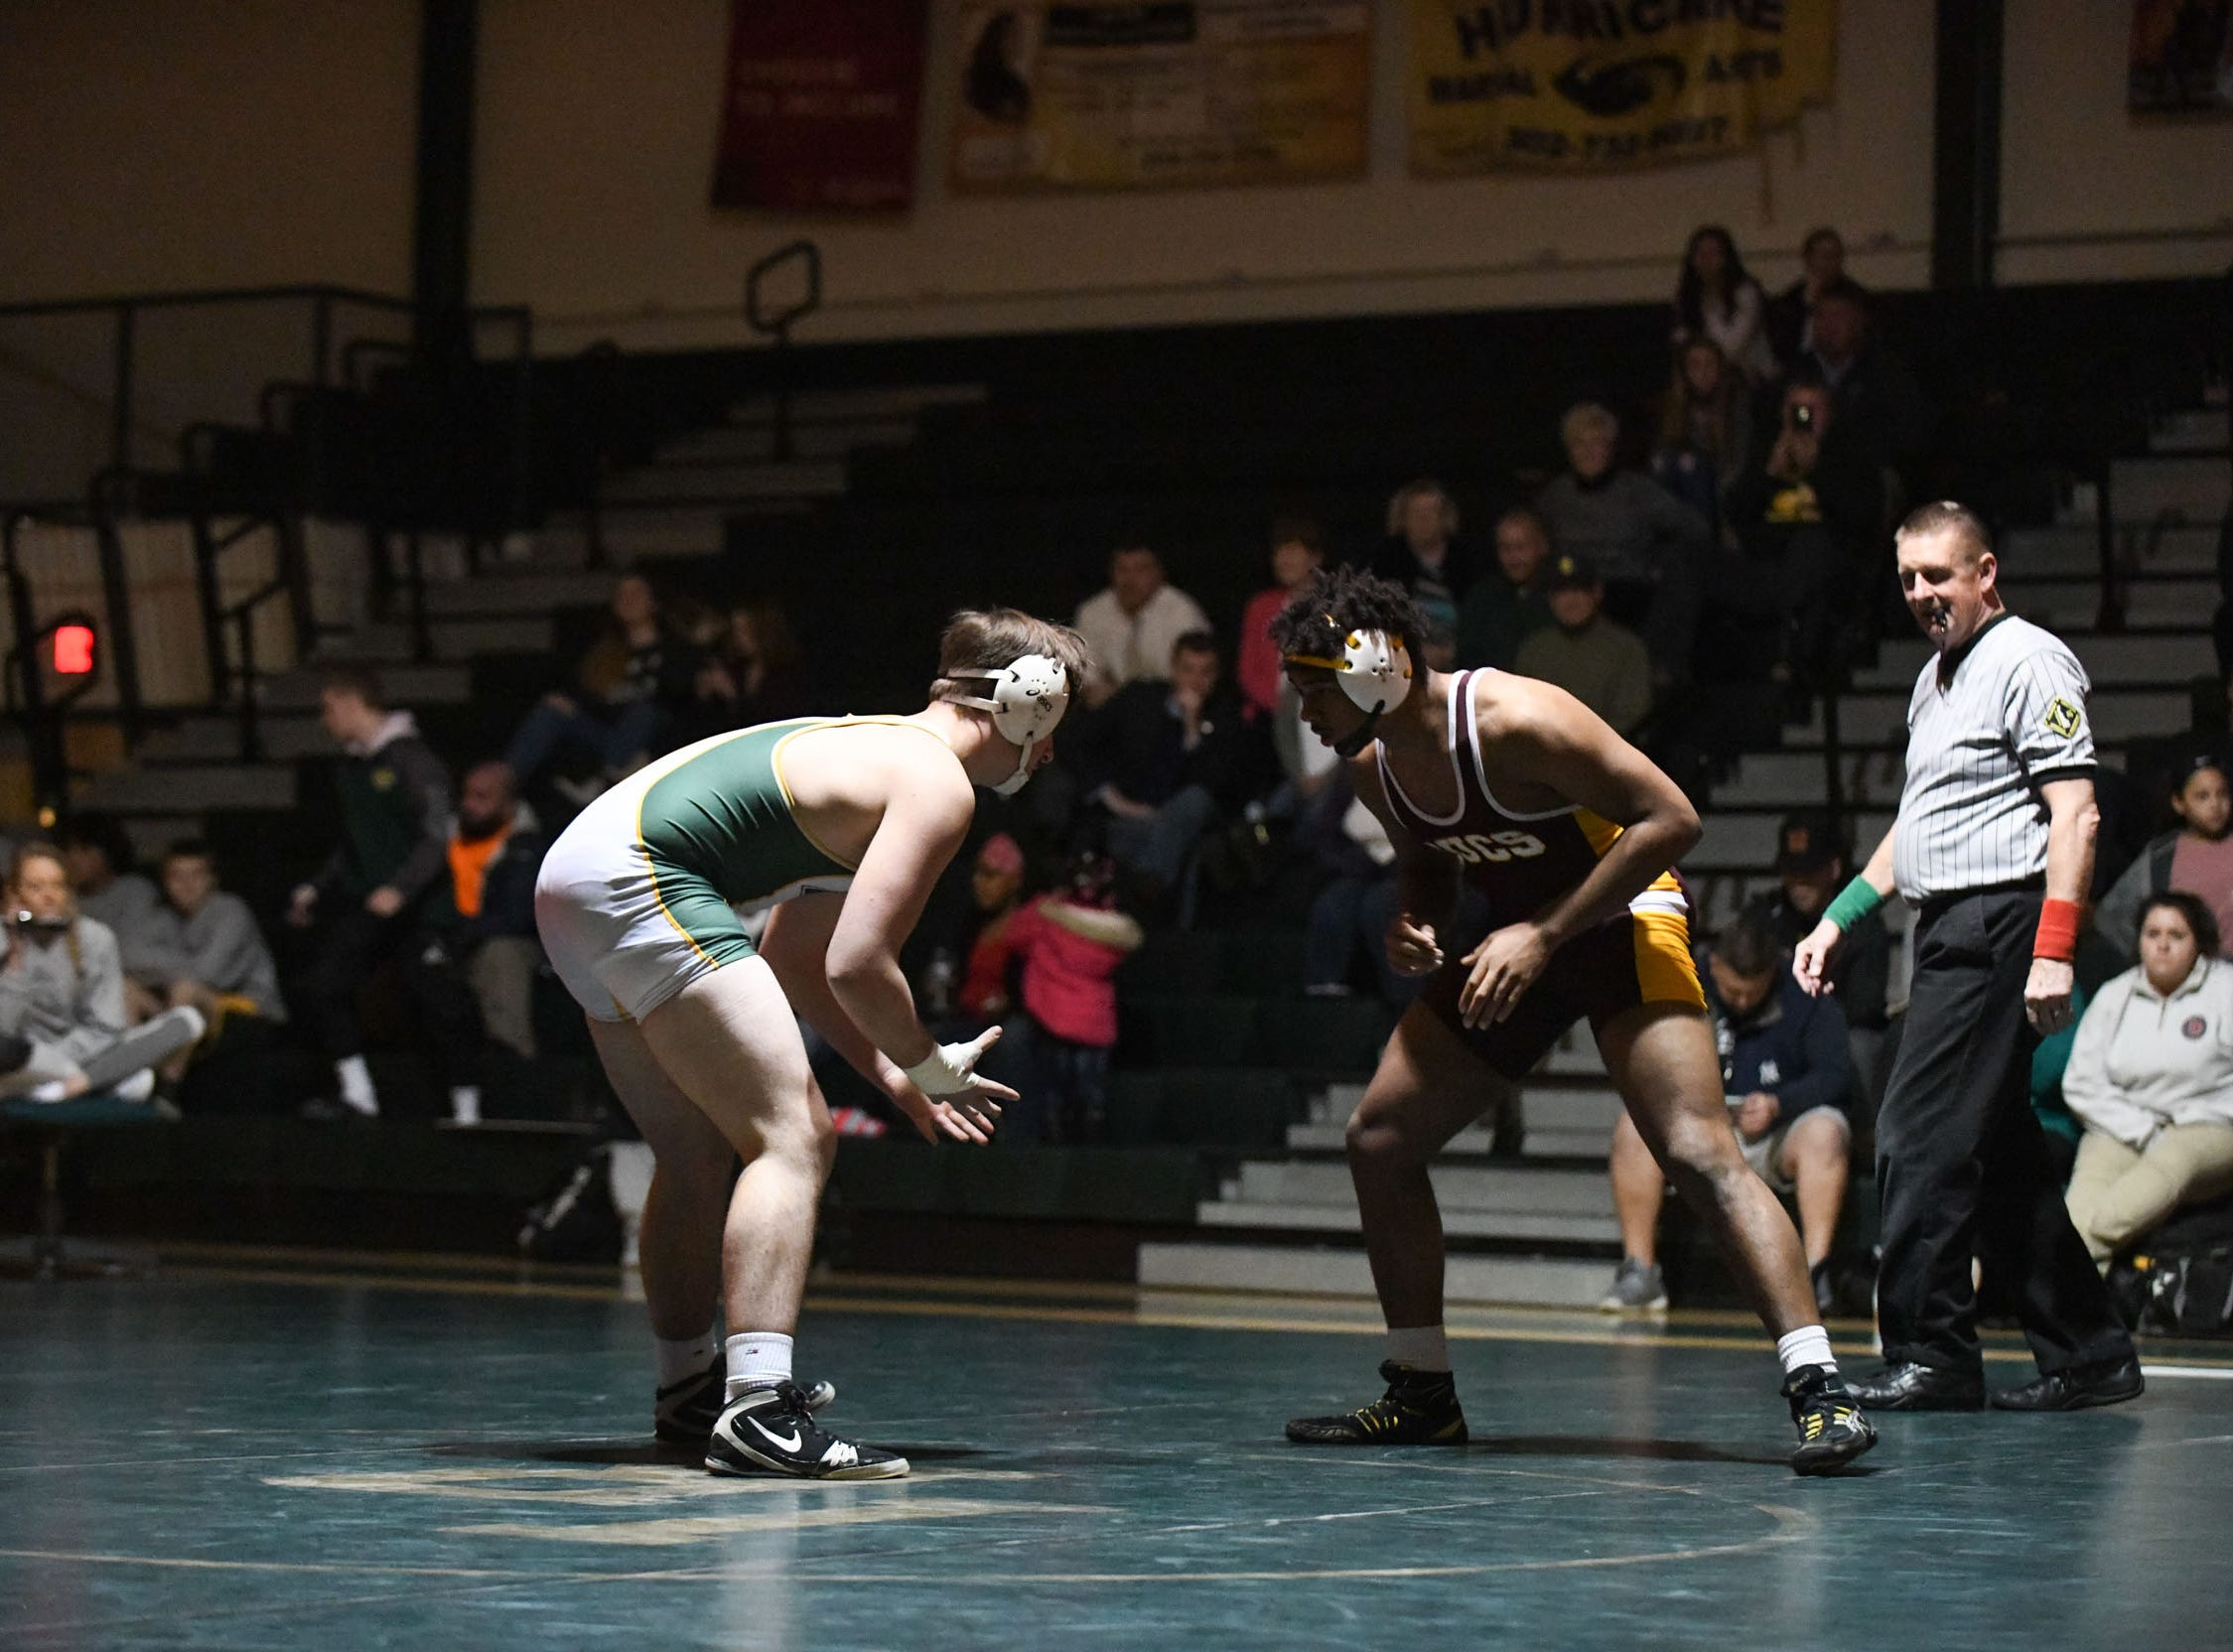 Indian River's Zach Schultz battled Milford's Eric Bennett during the 195lb match on Thursday, Jan 17, 2019 in Dagsboro, Del. Milford won the match 53-15.